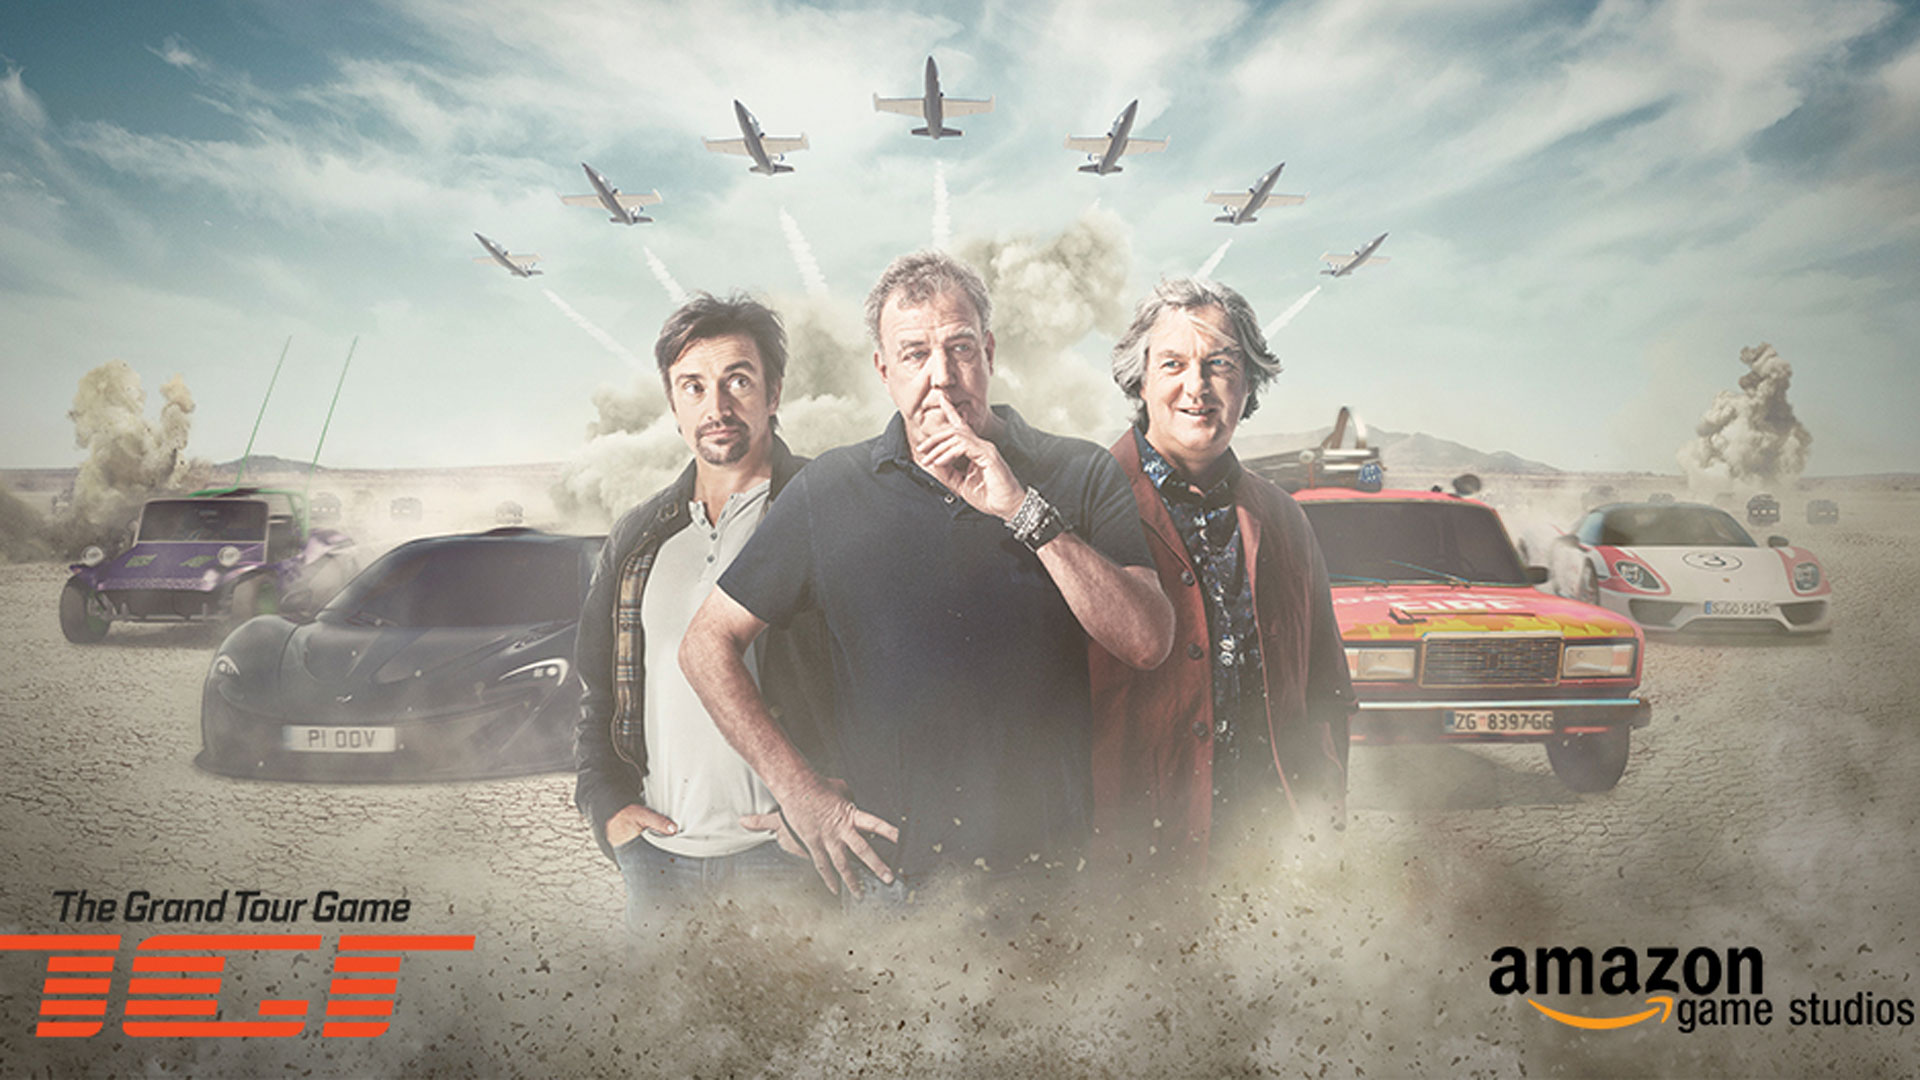 The Grand Tour Game artwork